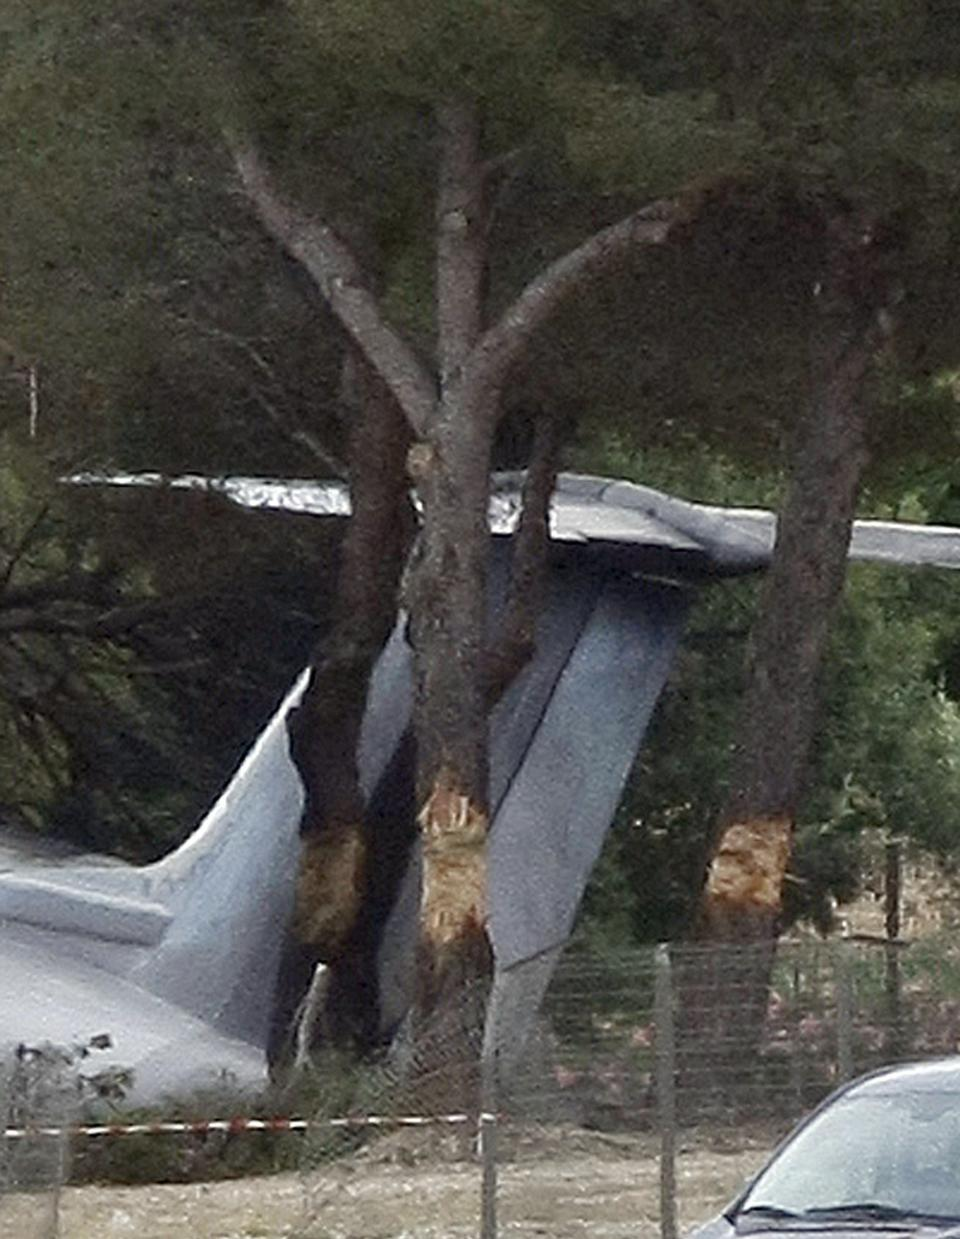 The plane lays in a wooded area after it crashed on landing at Le Castellet airport, near Toulon, southern France, Friday, July, 13, 2012. Three US citizen died in the accident. (AP Photo/Claude Paris)